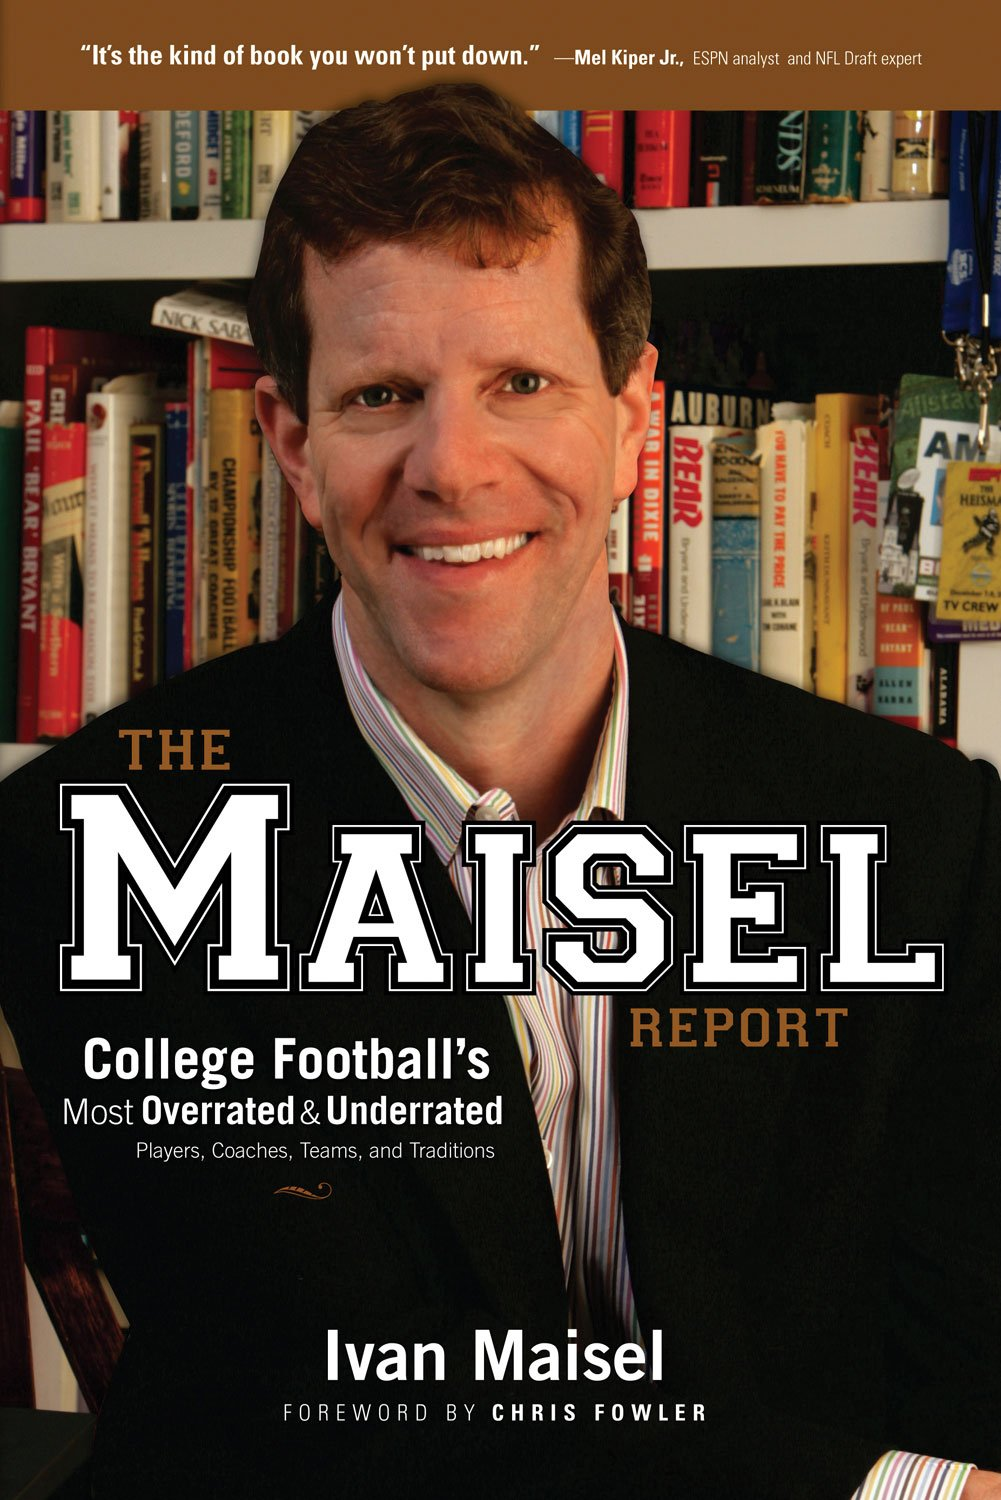 The Maisel Report: College Football's Most Overrated & Underrated Players, Coaches, Teams, and Traditions PDF